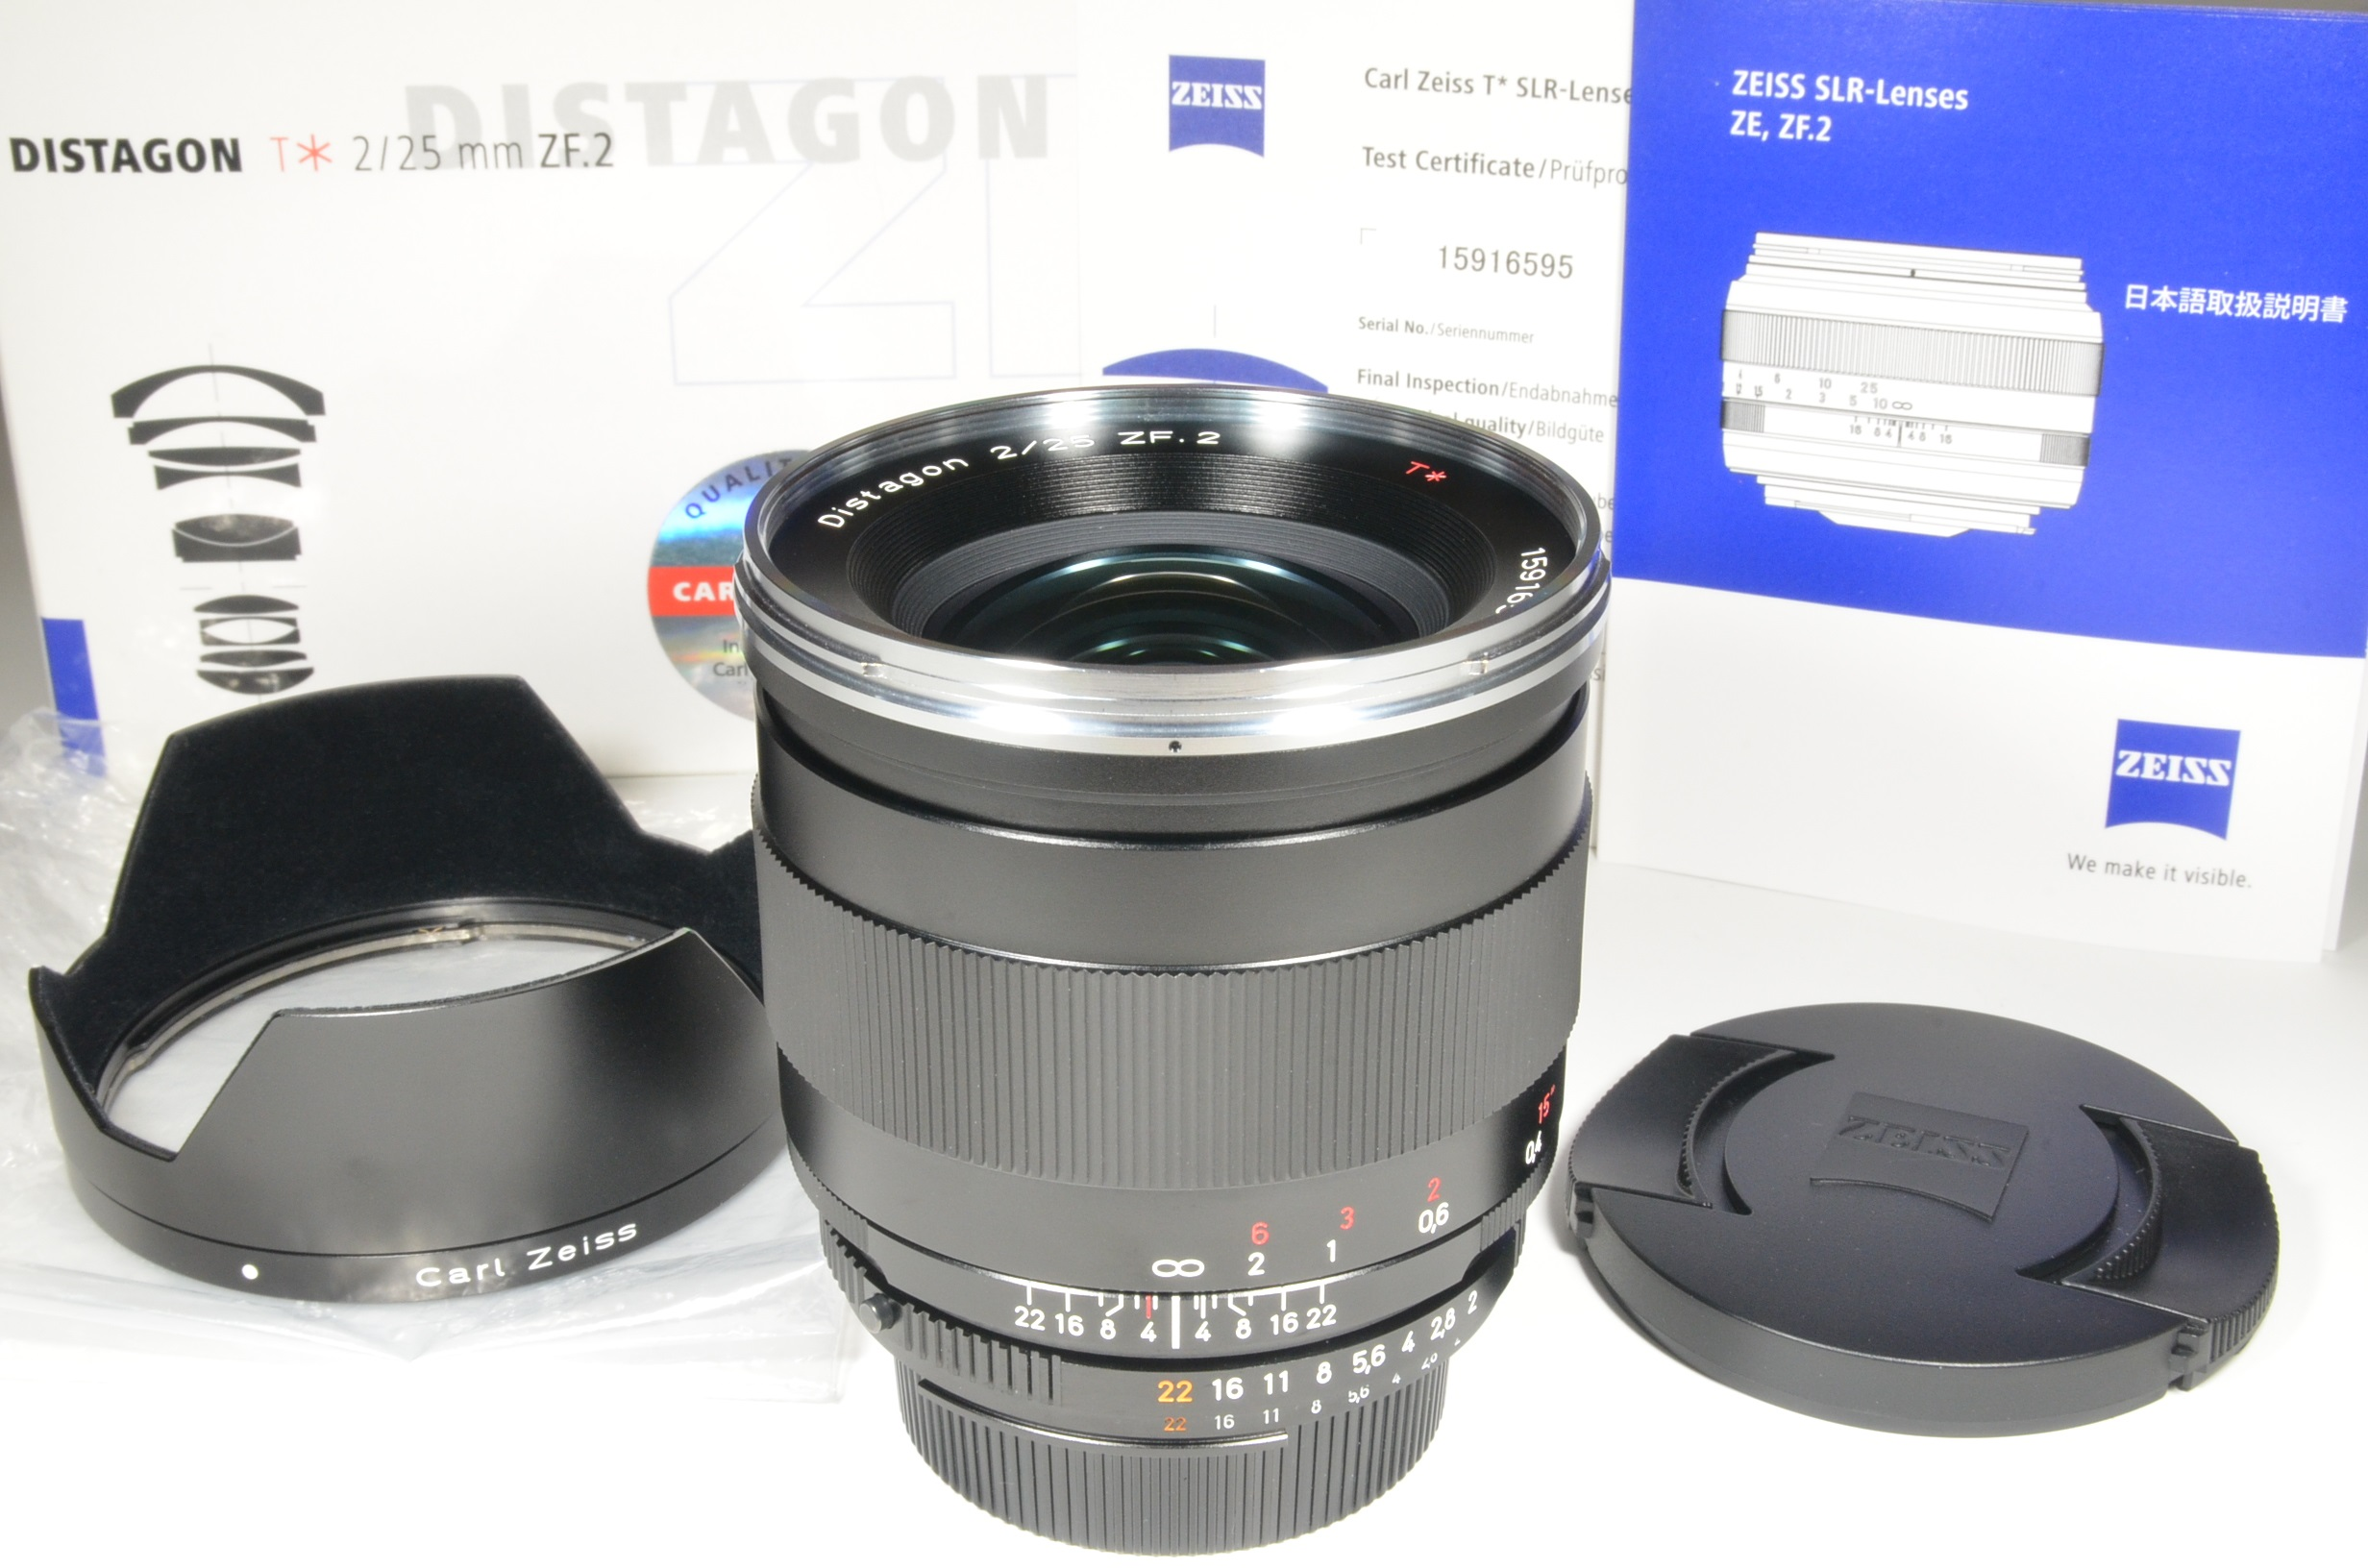 carl zeiss distagon t* 25mm f2 zf.2 for nikon lens